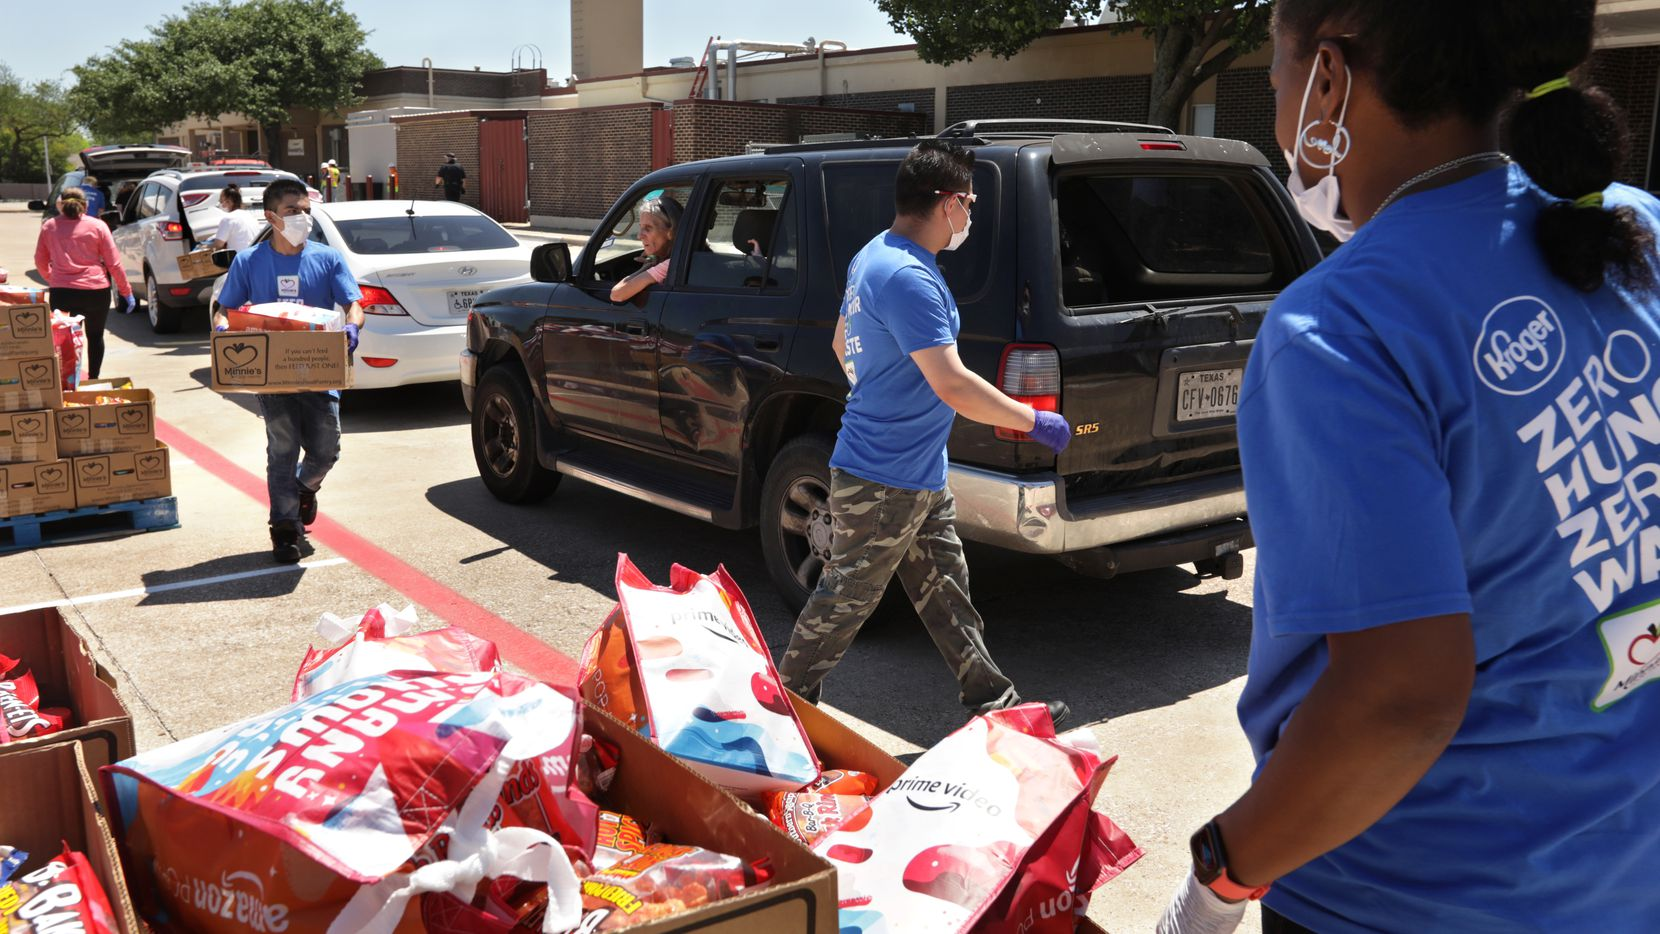 Volunteers deliver meals to families at Bowman Middle School in Plano.